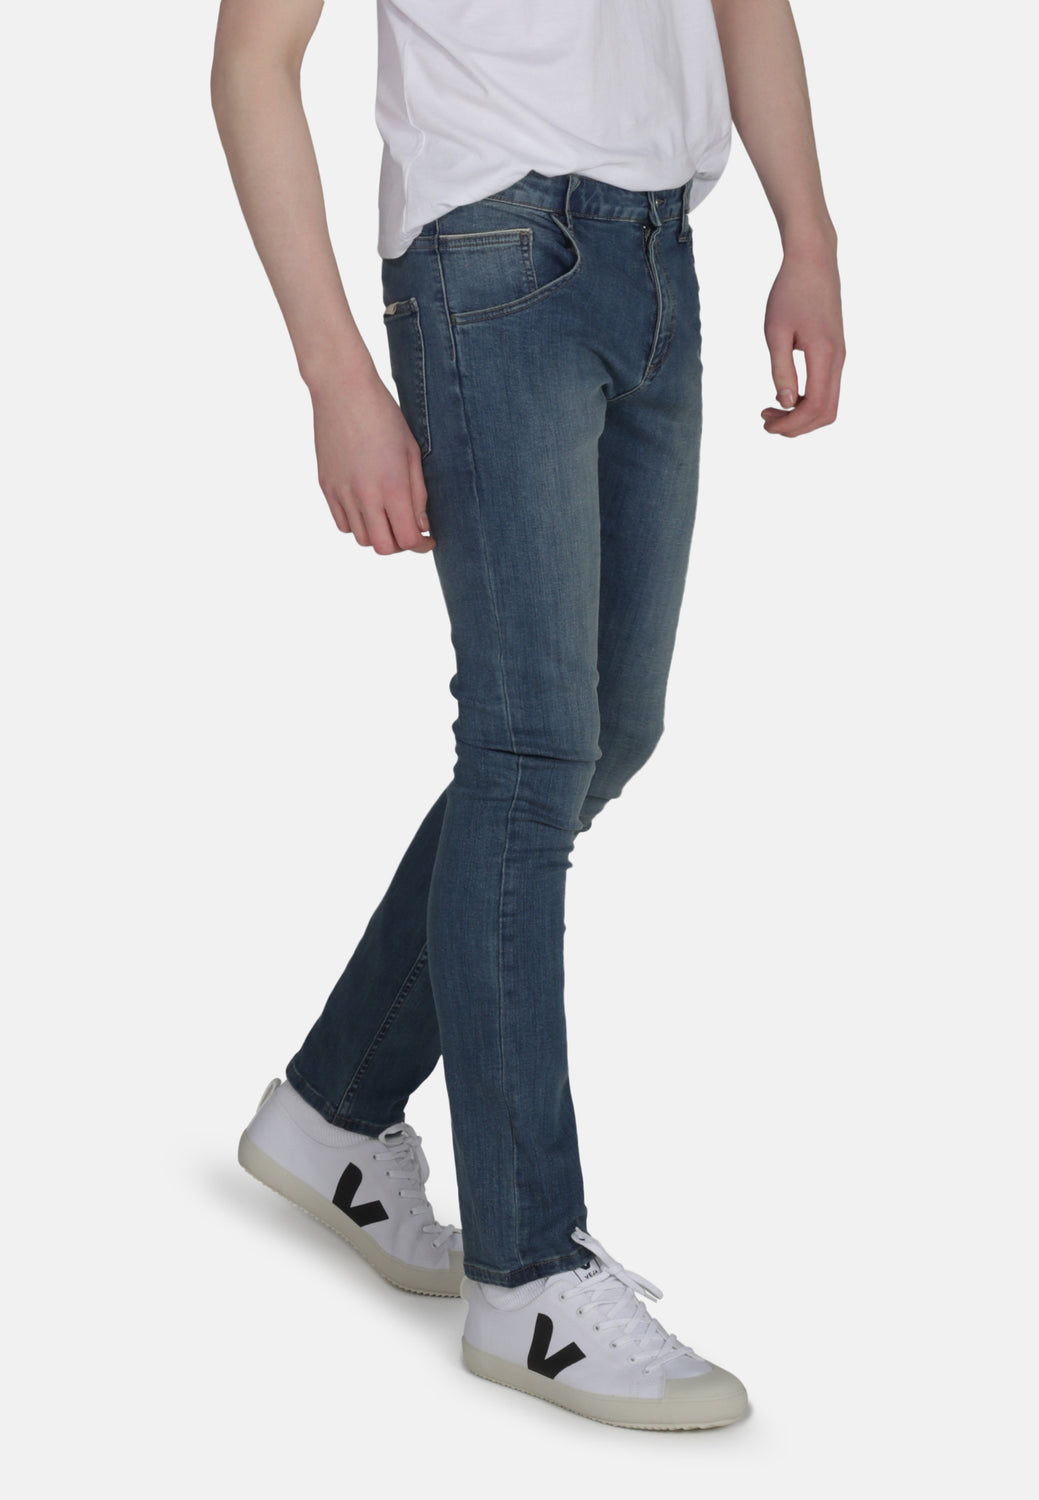 DEAN // Organic Slim Fit Jeans in Mid Wash - Monkee Genes Organic Jeans Denim - Men's Slim Fit Monkee Genes Official  Monkee Genes Official